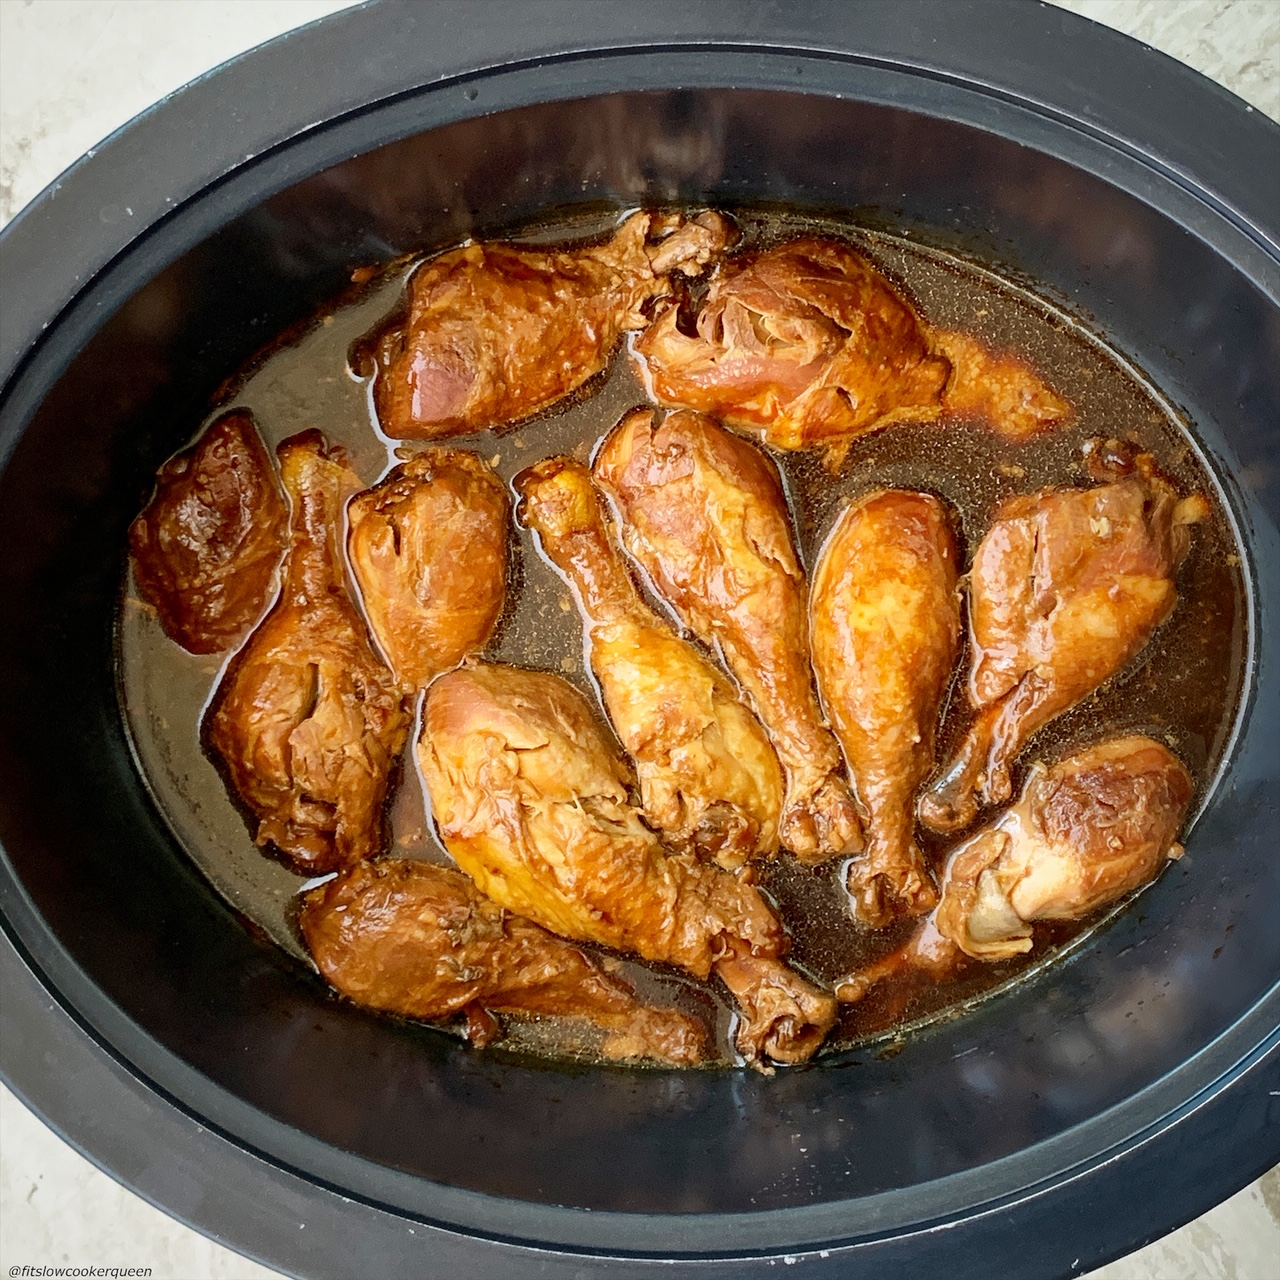 after pic of cooked teriyaki chicken in the slow cooker